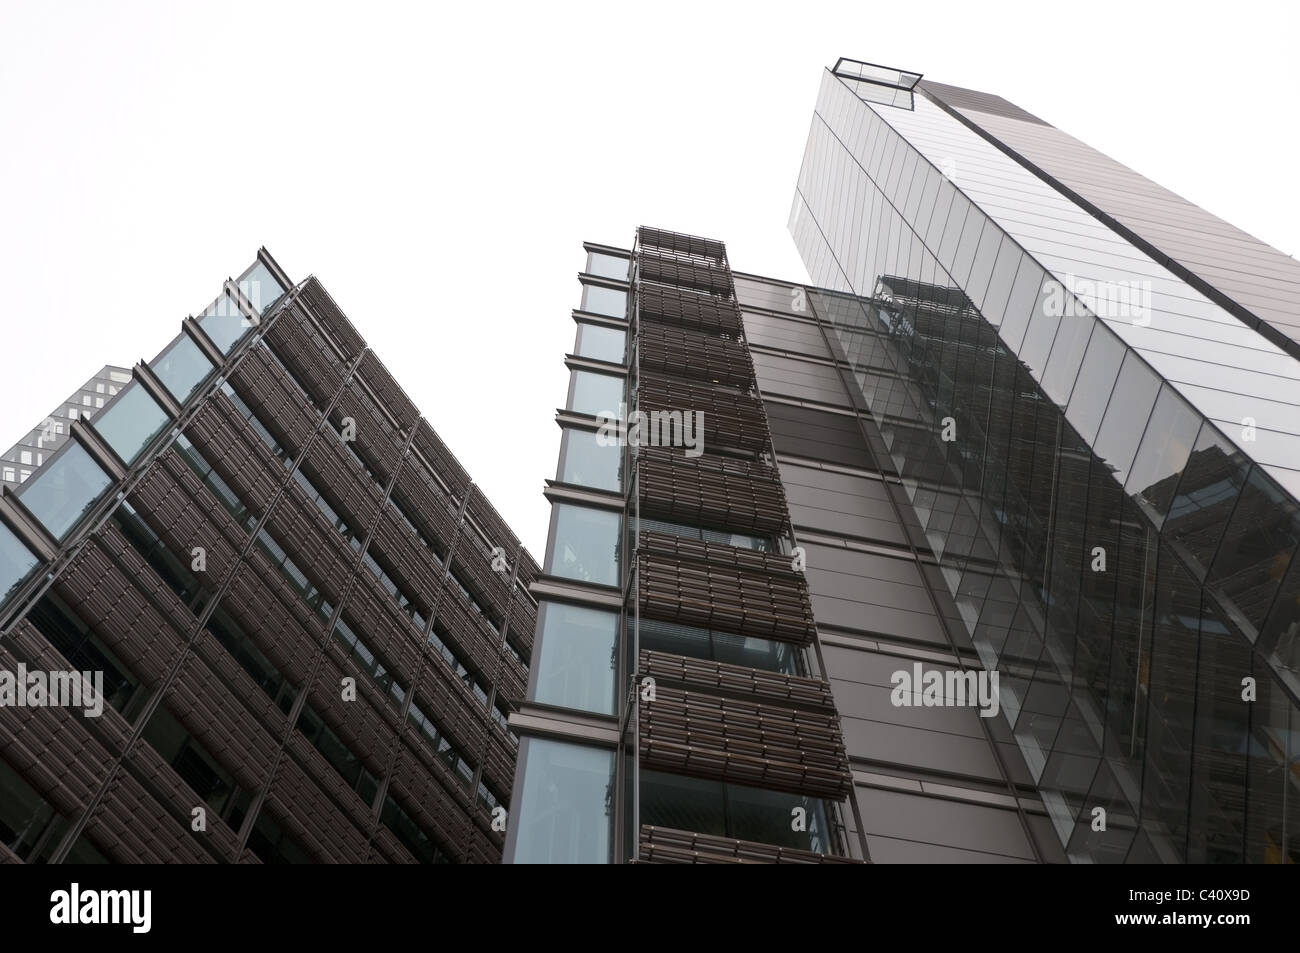 L'architecture de verre moderne, contemporaine, l'immeuble de bureaux au bord du bassin de Paddington, Londres, Photo Stock